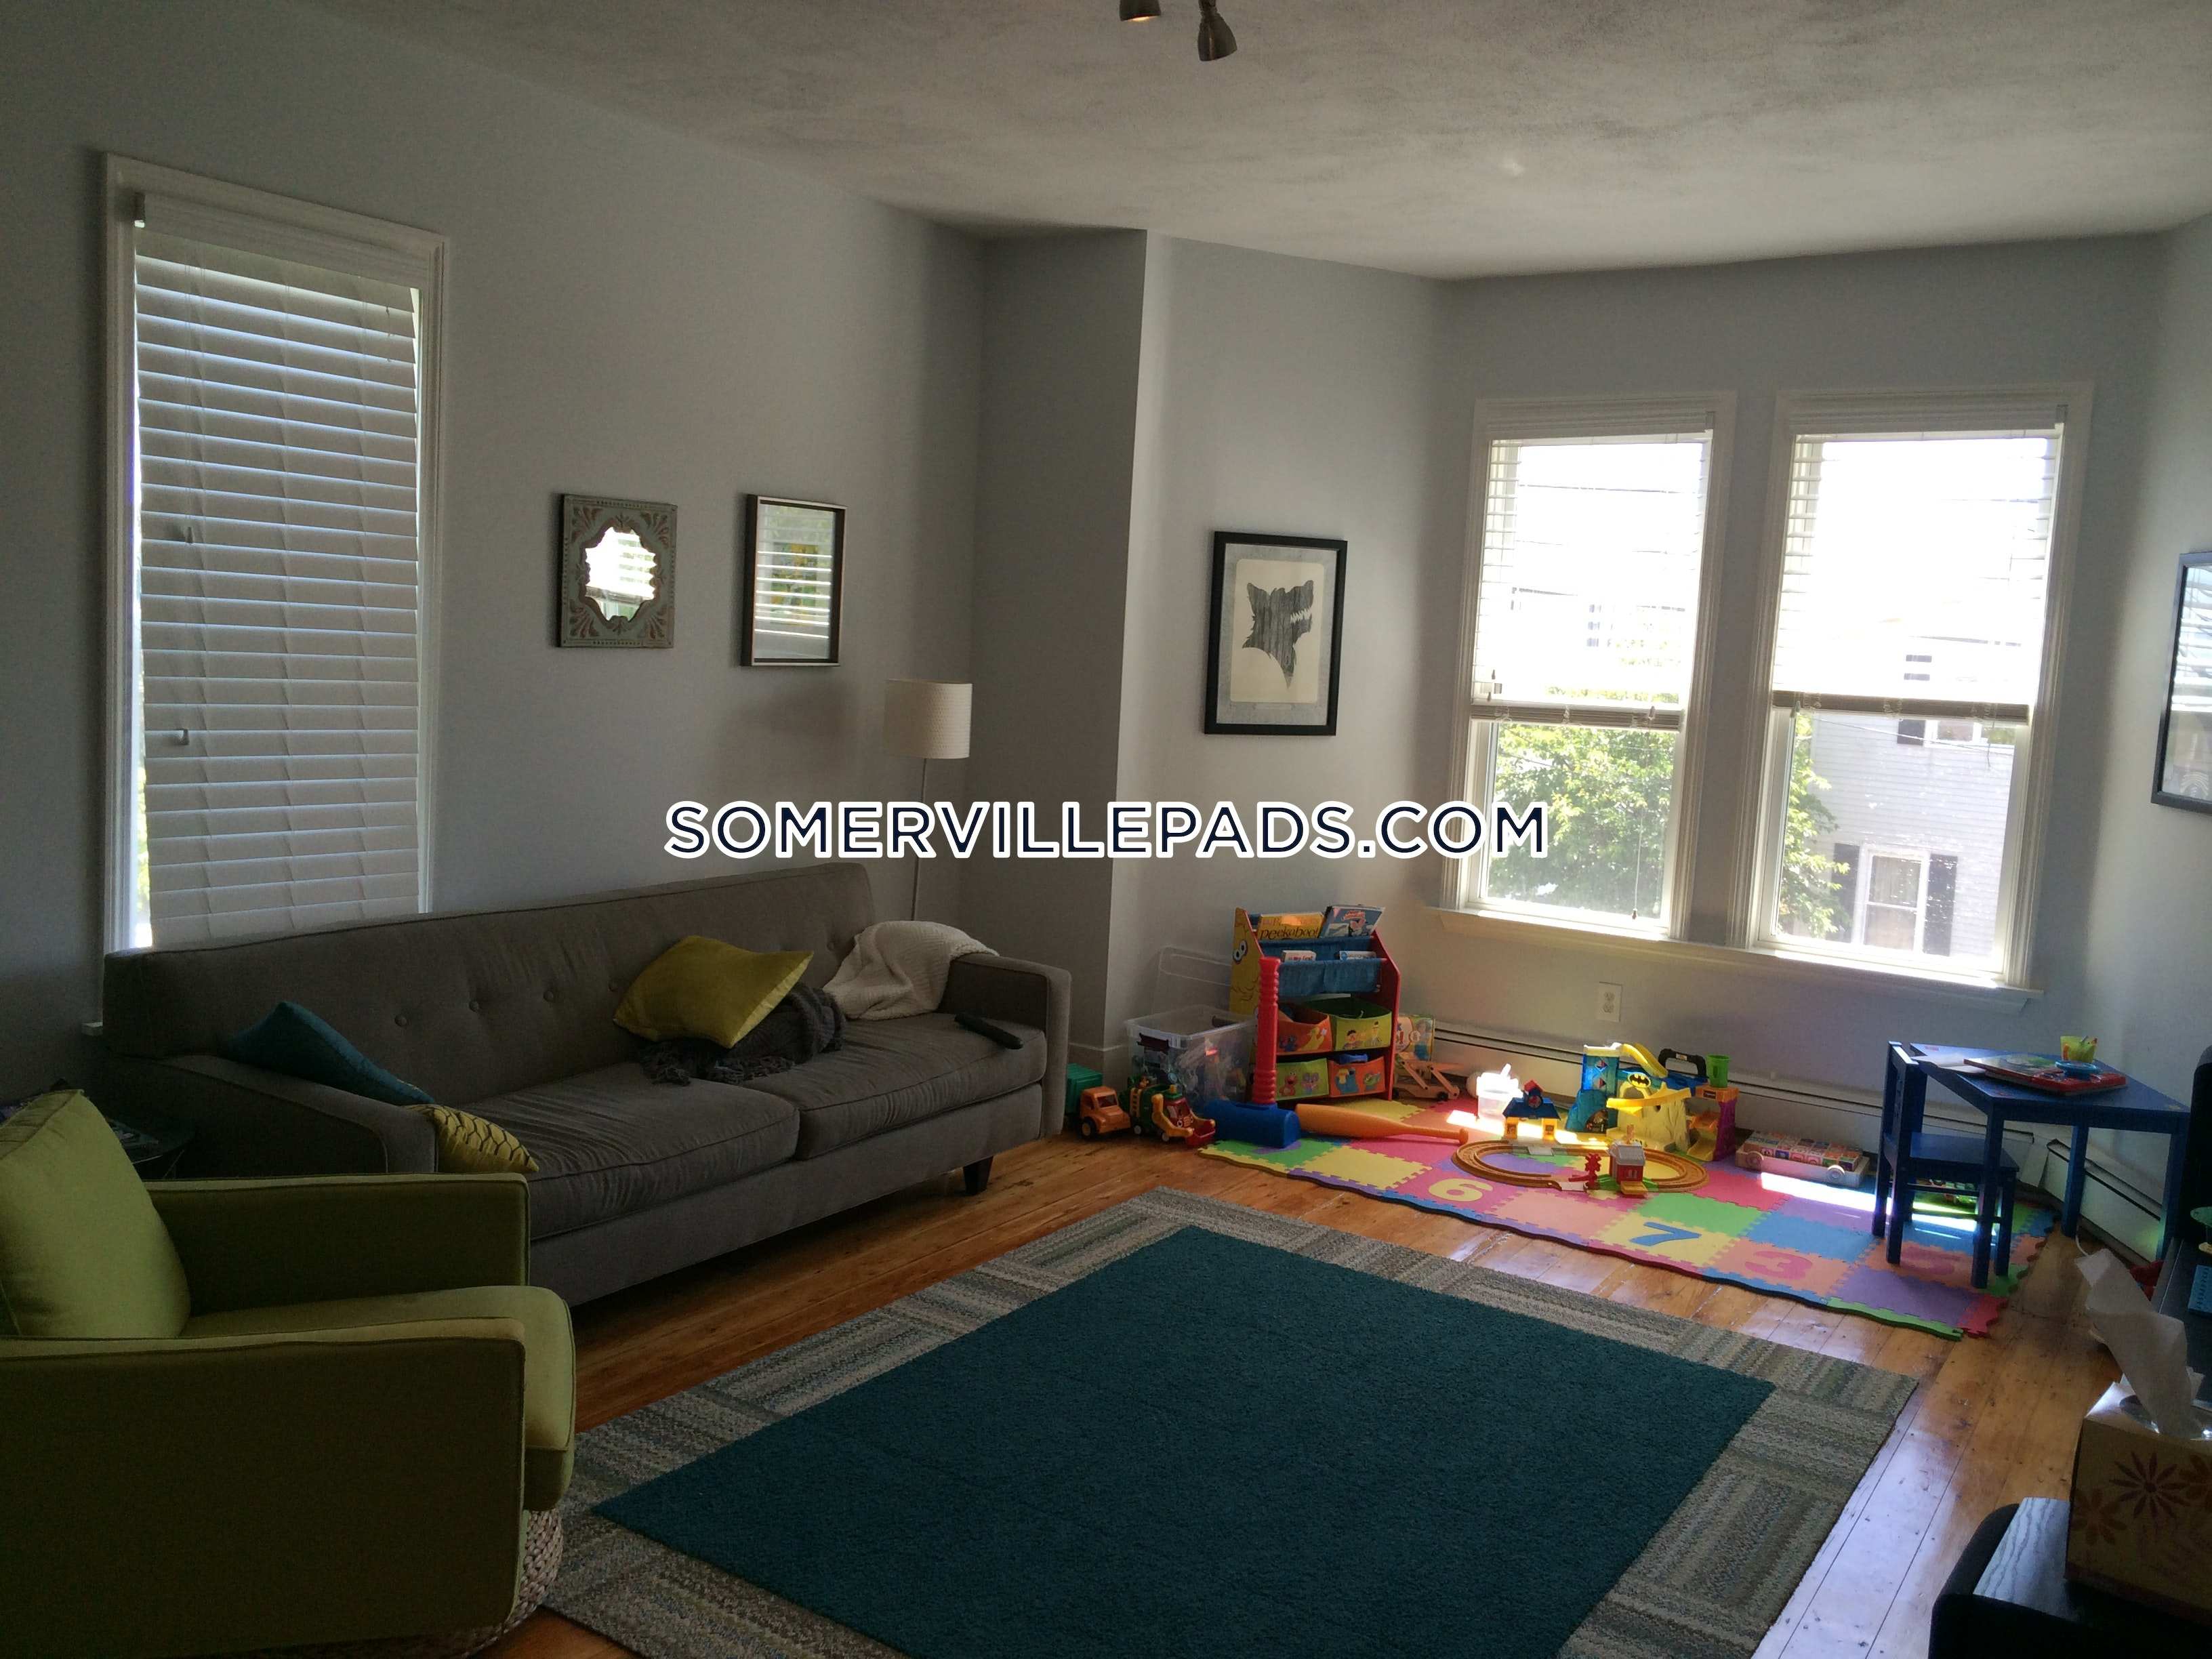 3-beds-1-bath-somerville-union-square-3300-436941